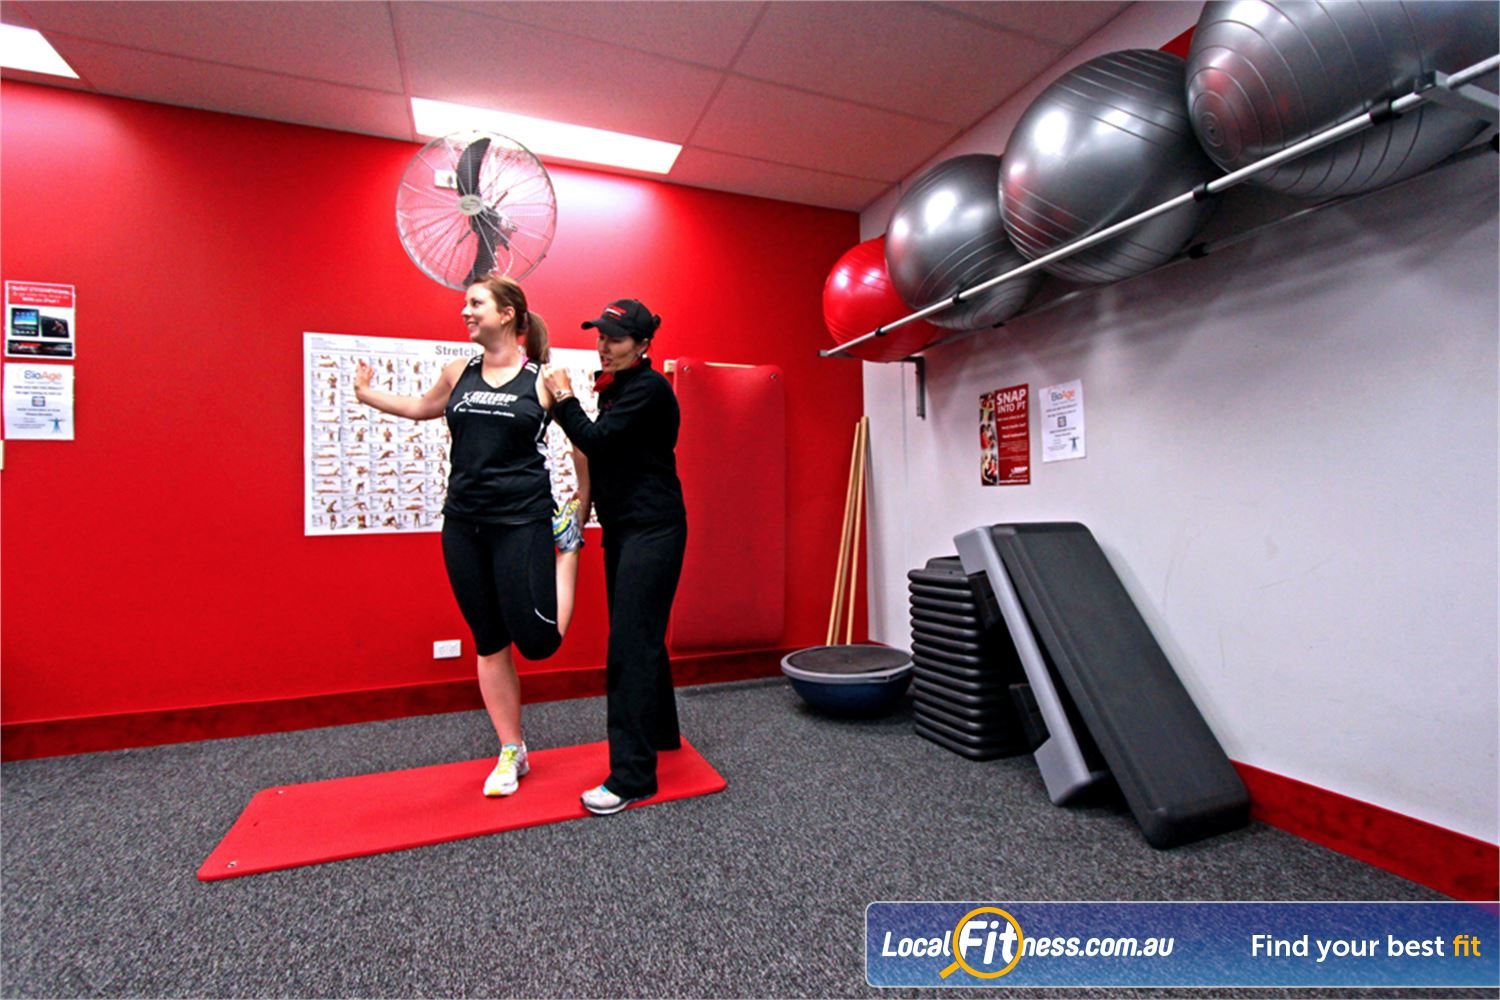 Snap Fitness Near Westlake Dedicated stretching and ab area.